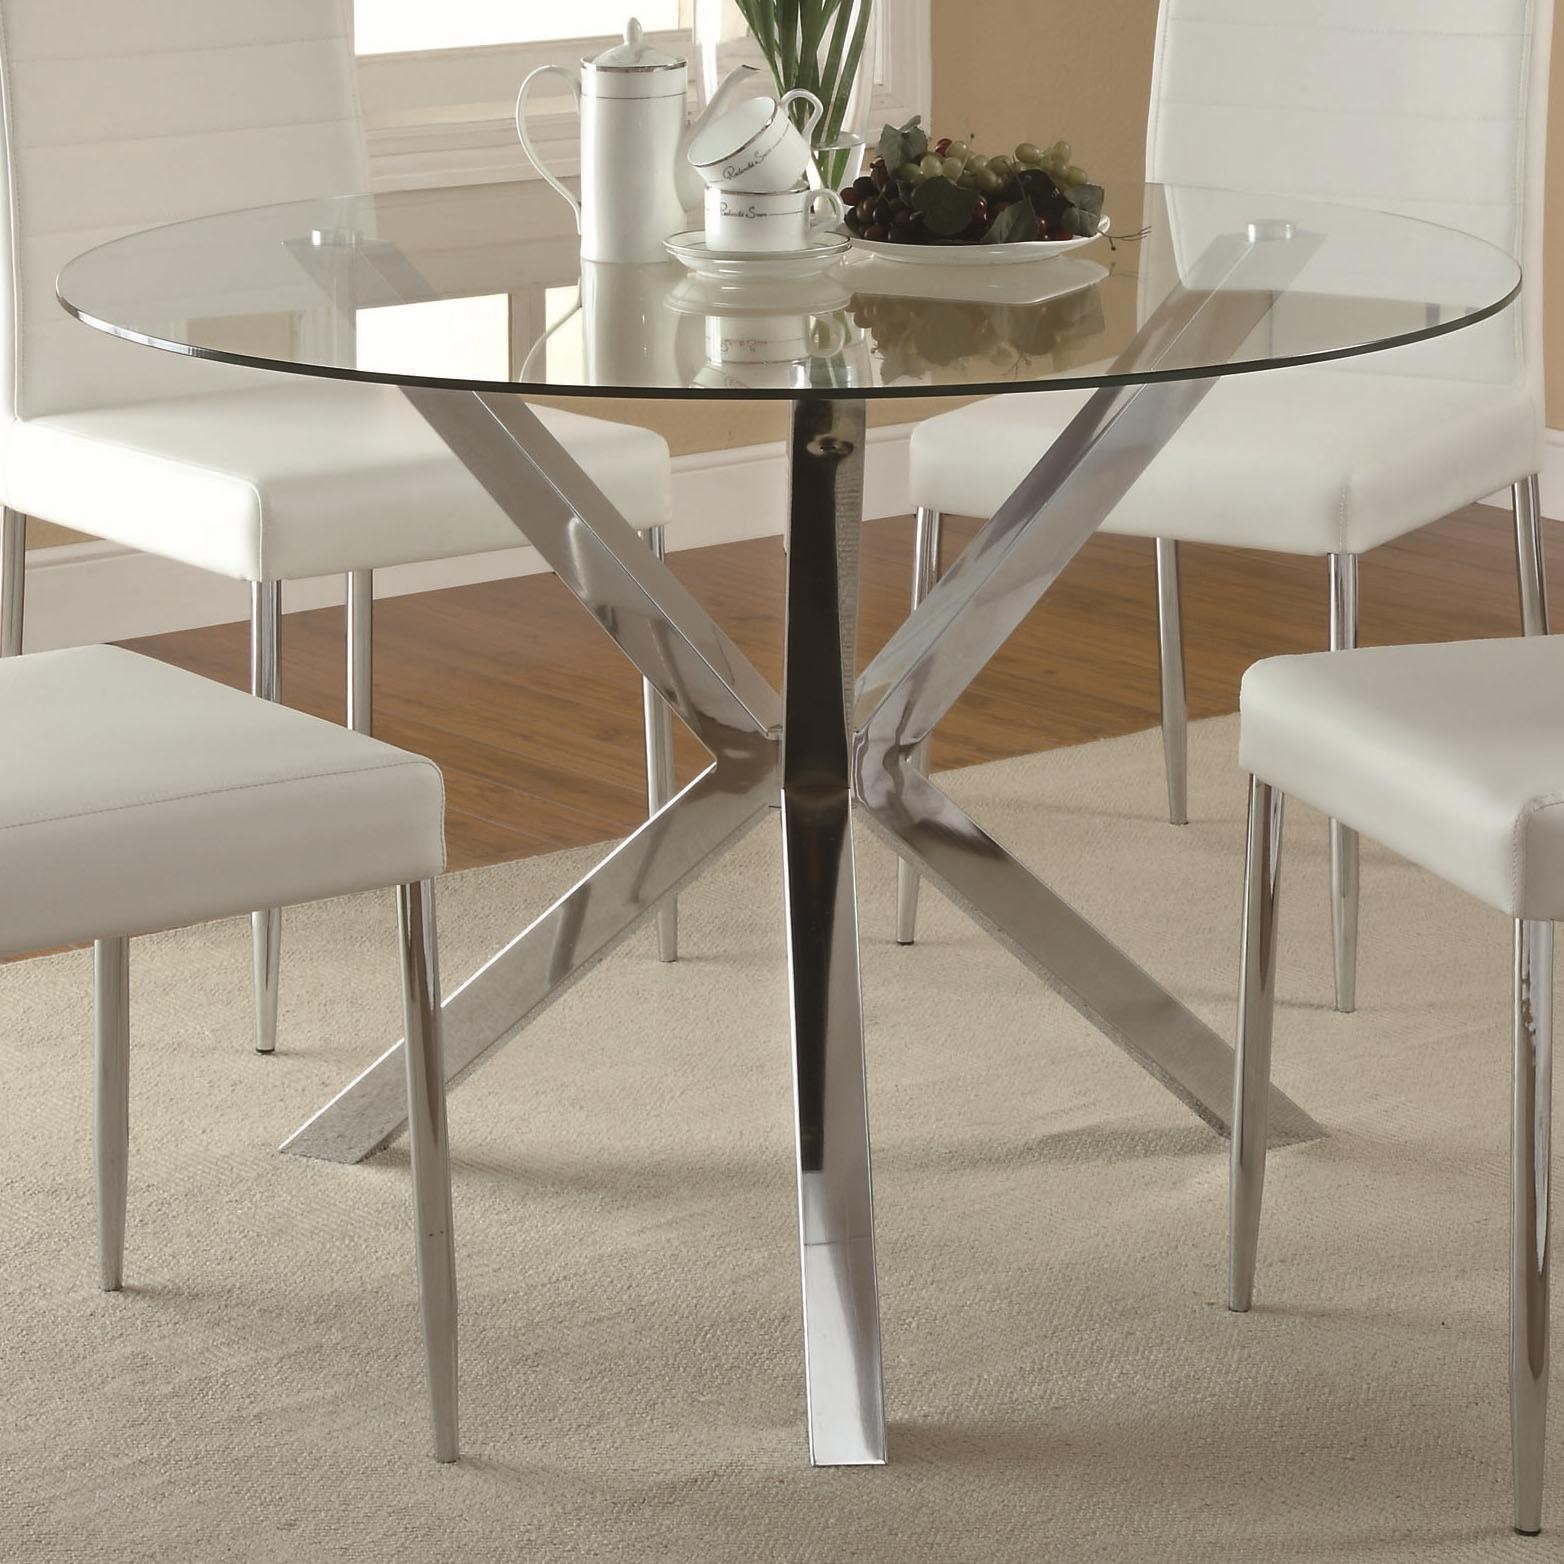 Coaster Vance Contemporary Glass Top Dining Table With Unique Chrome Base